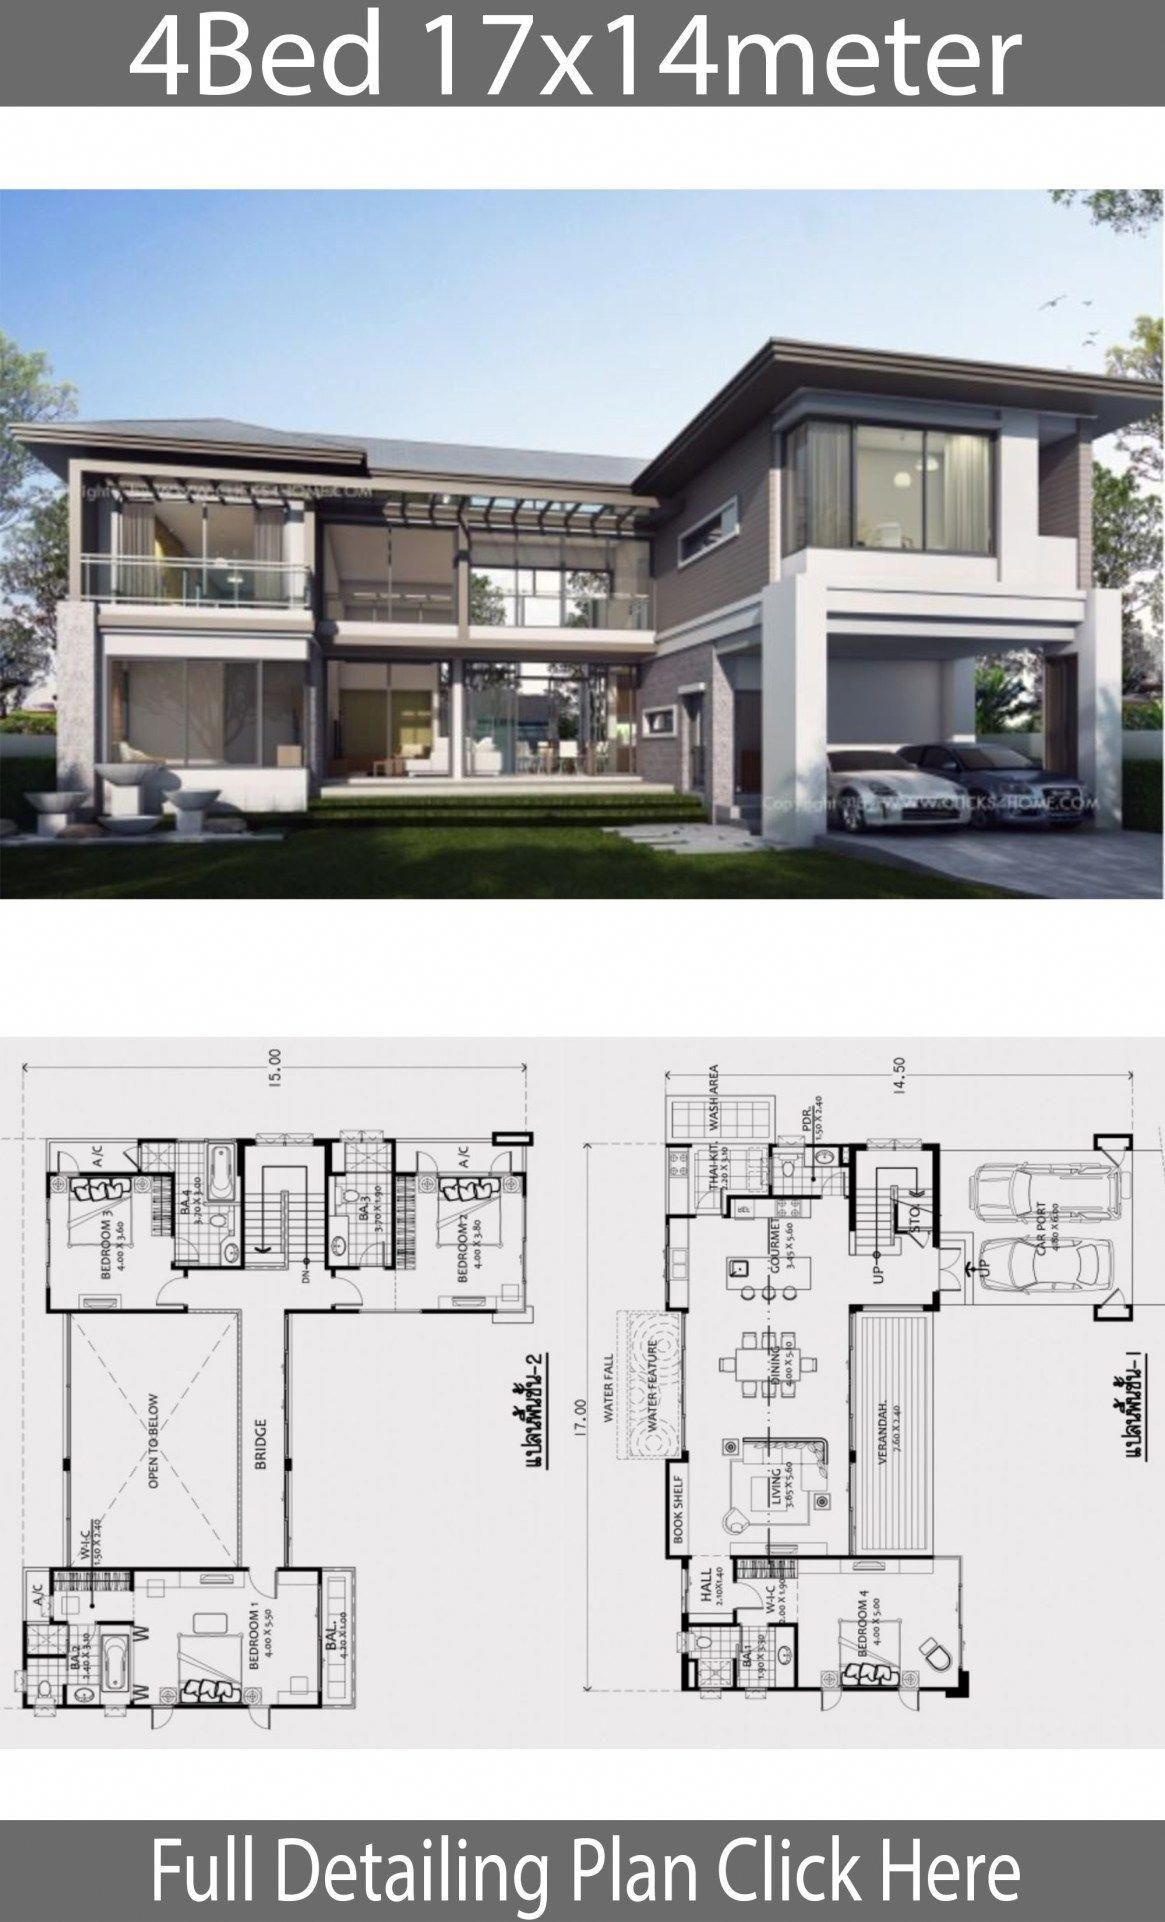 Home Design Plan 17x14m With 4 Bedrooms Home Design With Plansearch Modernhomeinteriors Beautiful House Plans Architecture House House Projects Architecture